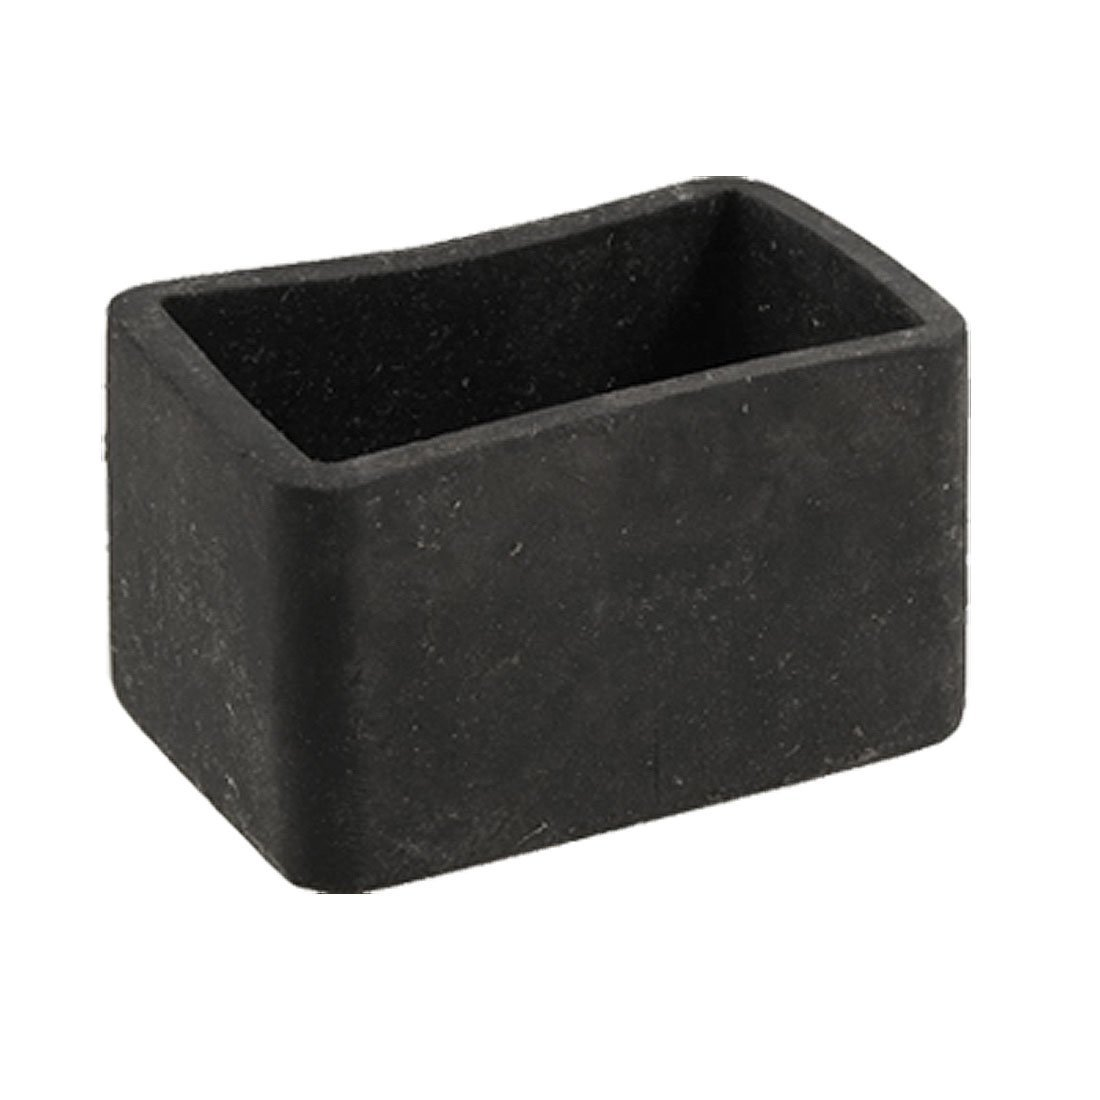 Table Chair Leg Black Rubber Rectangle 25mm X 38mm Protective Foot